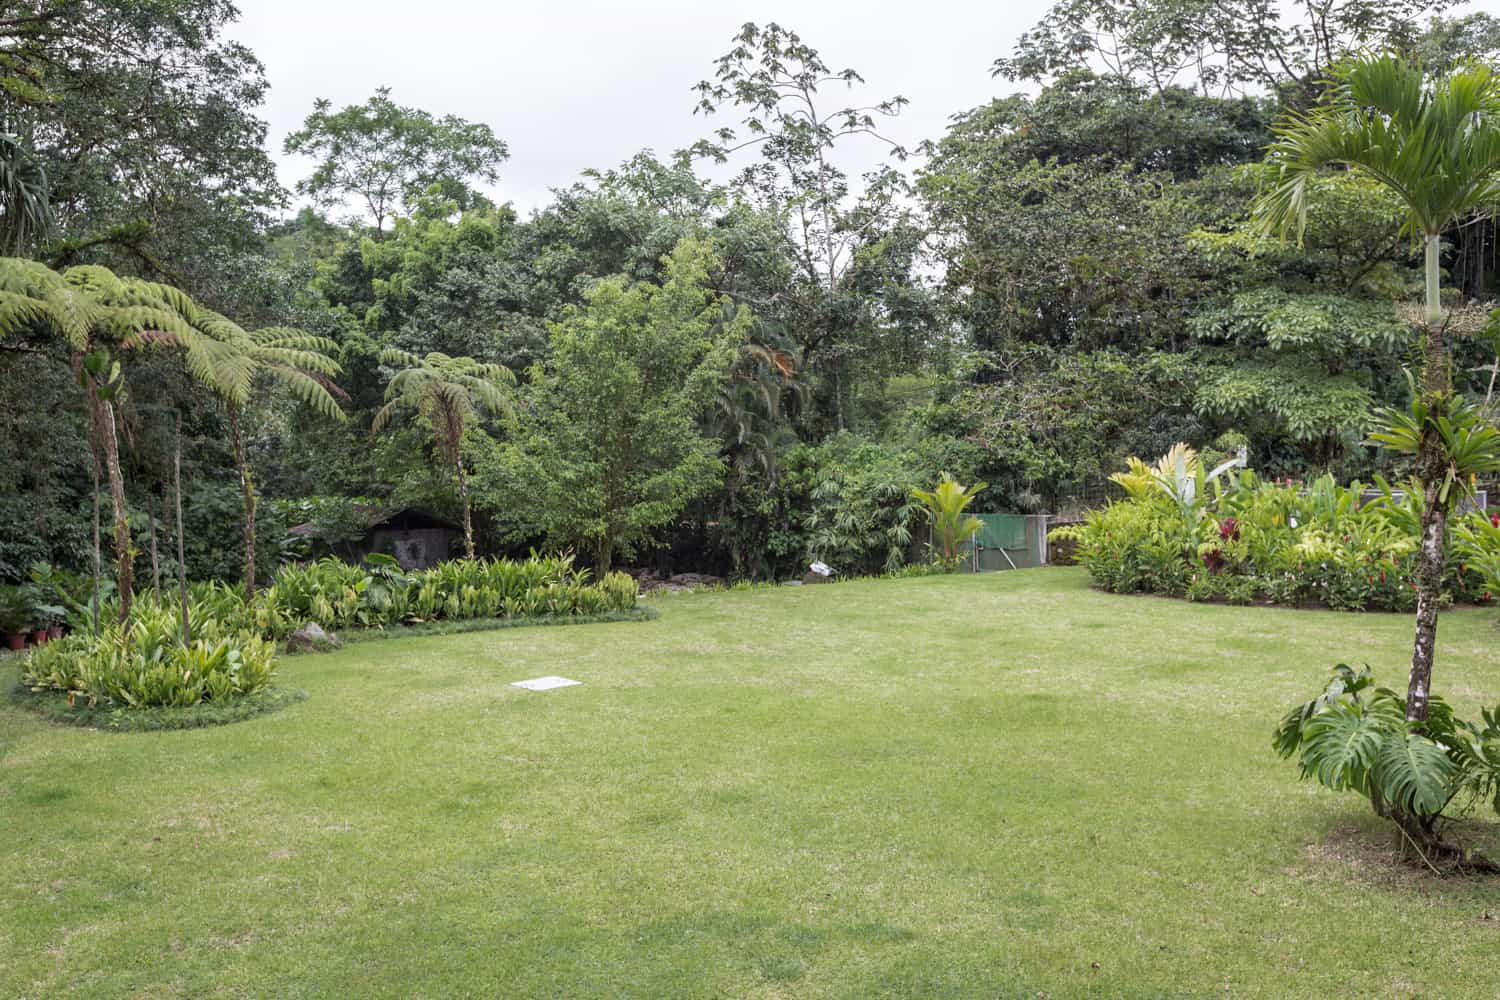 Lawn and garden site for large weddings at Tabacon Resort.